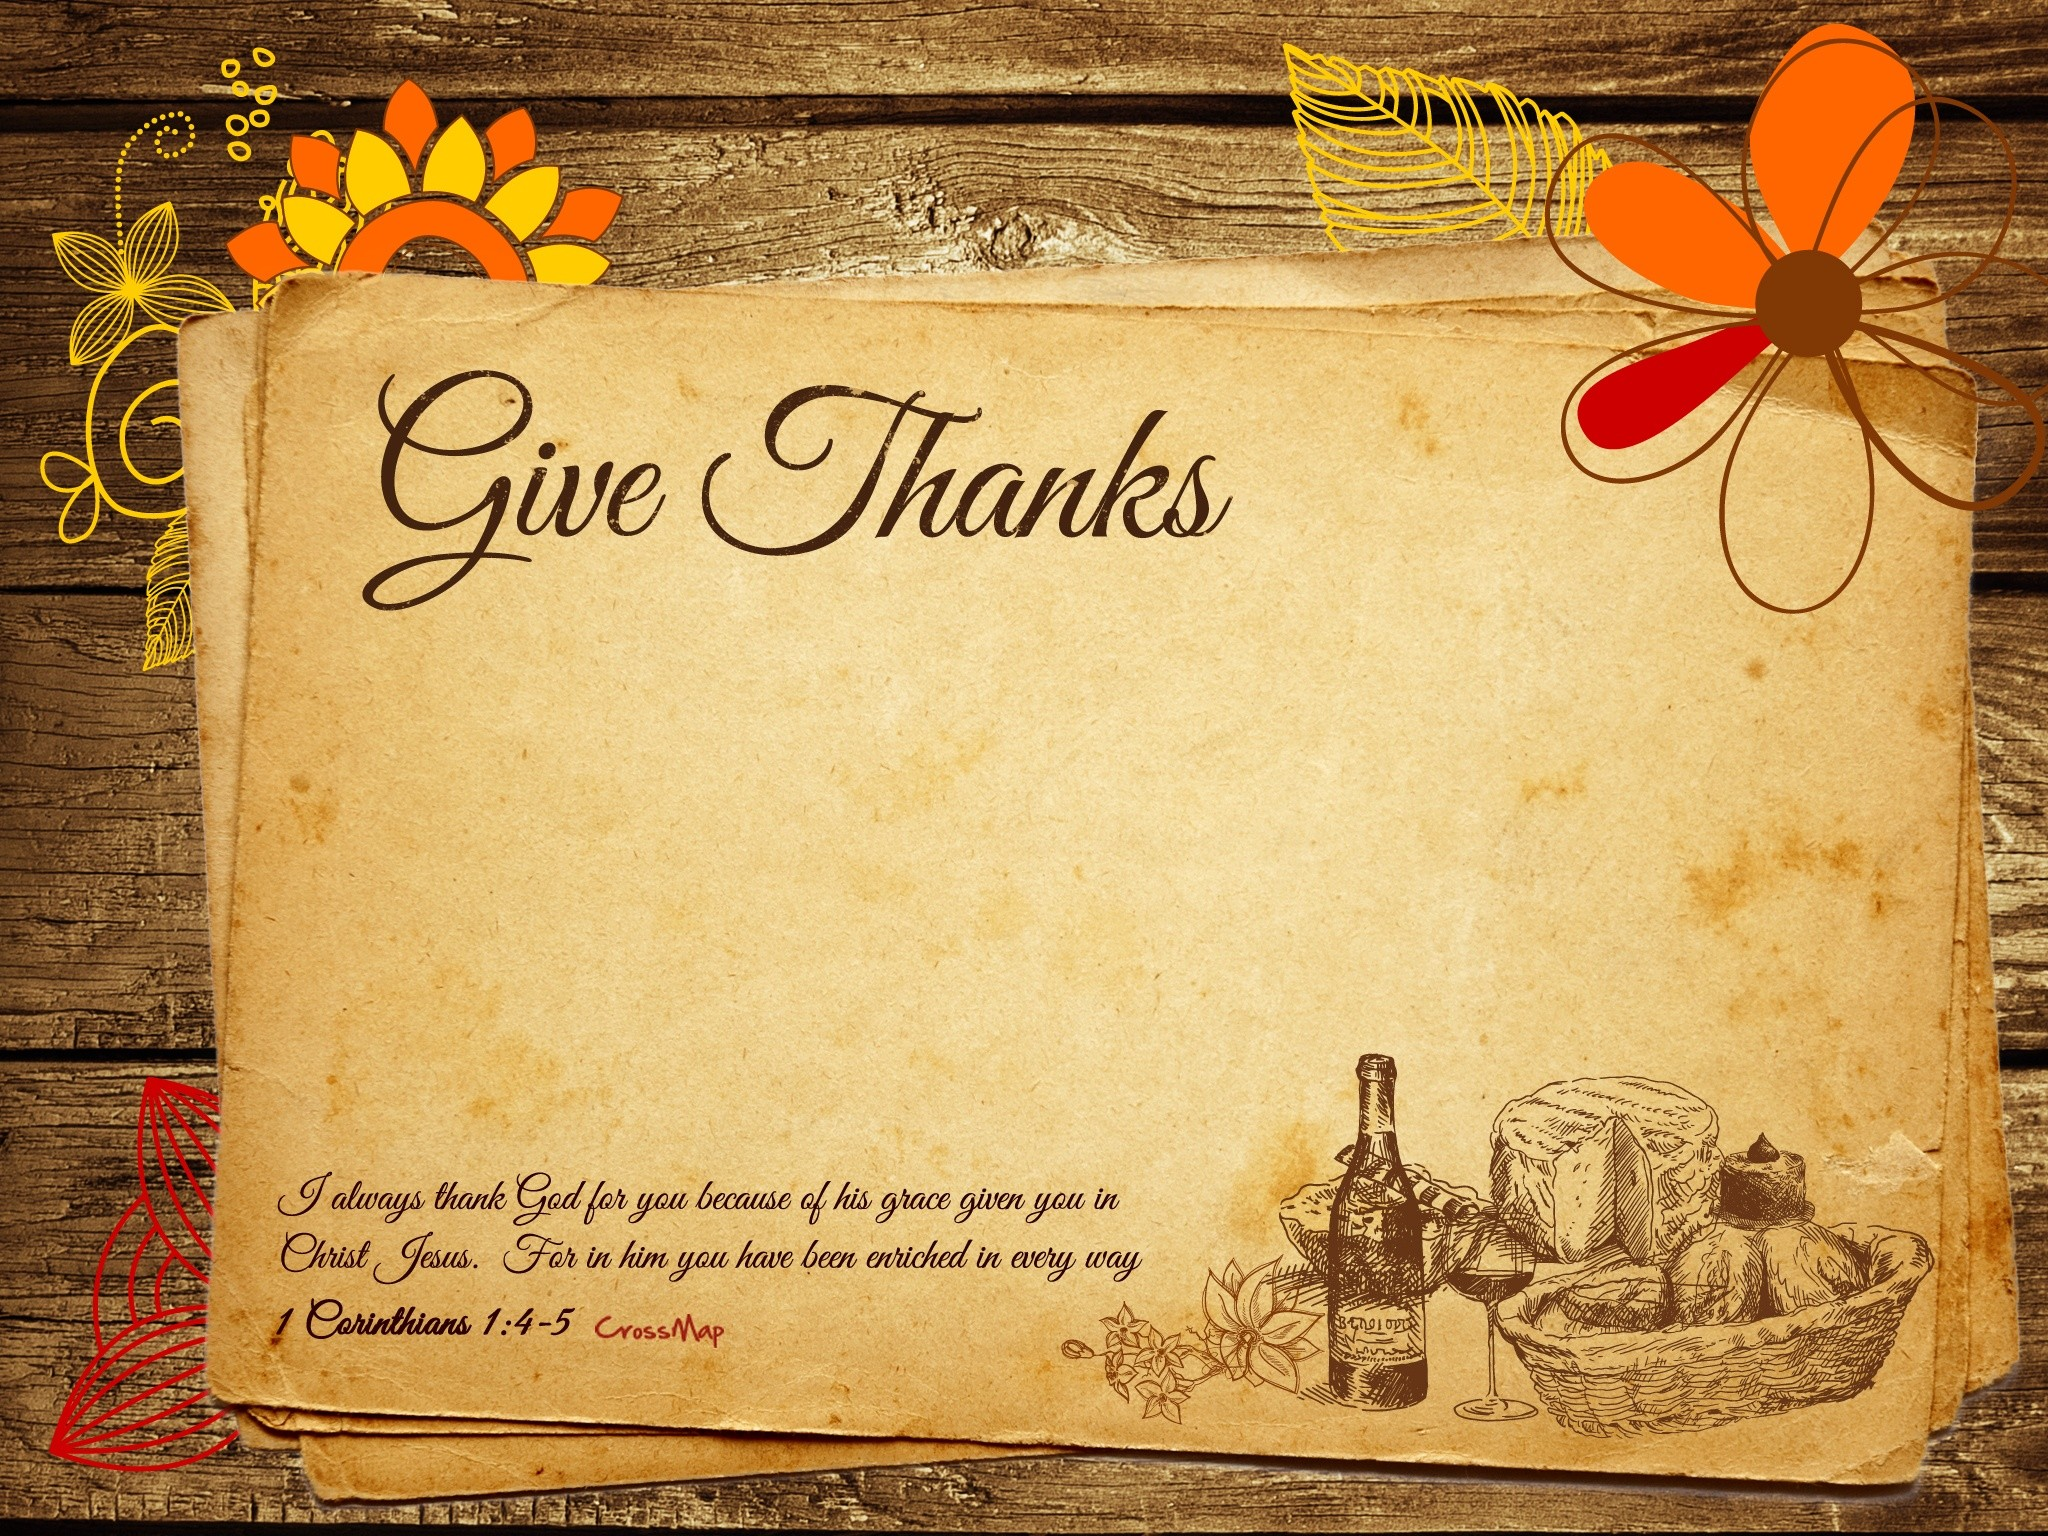 Christian Wallpaper Fall Offering Christian Thanksgiving Wallpaper 35 Images